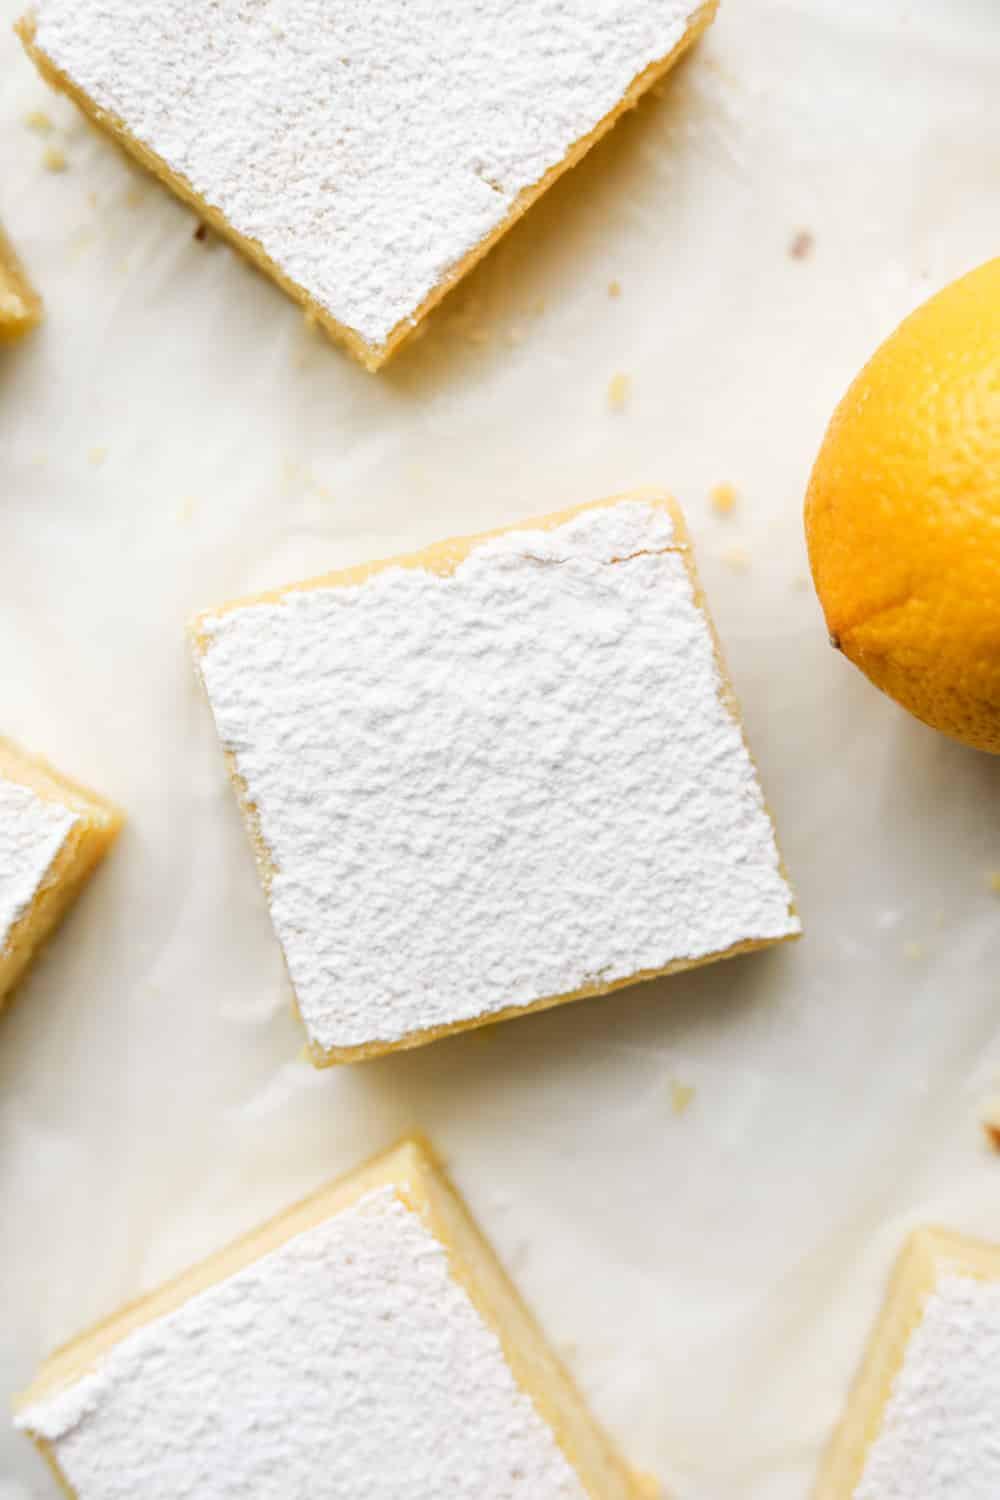 The top of a lemon bar covered in Swerve.